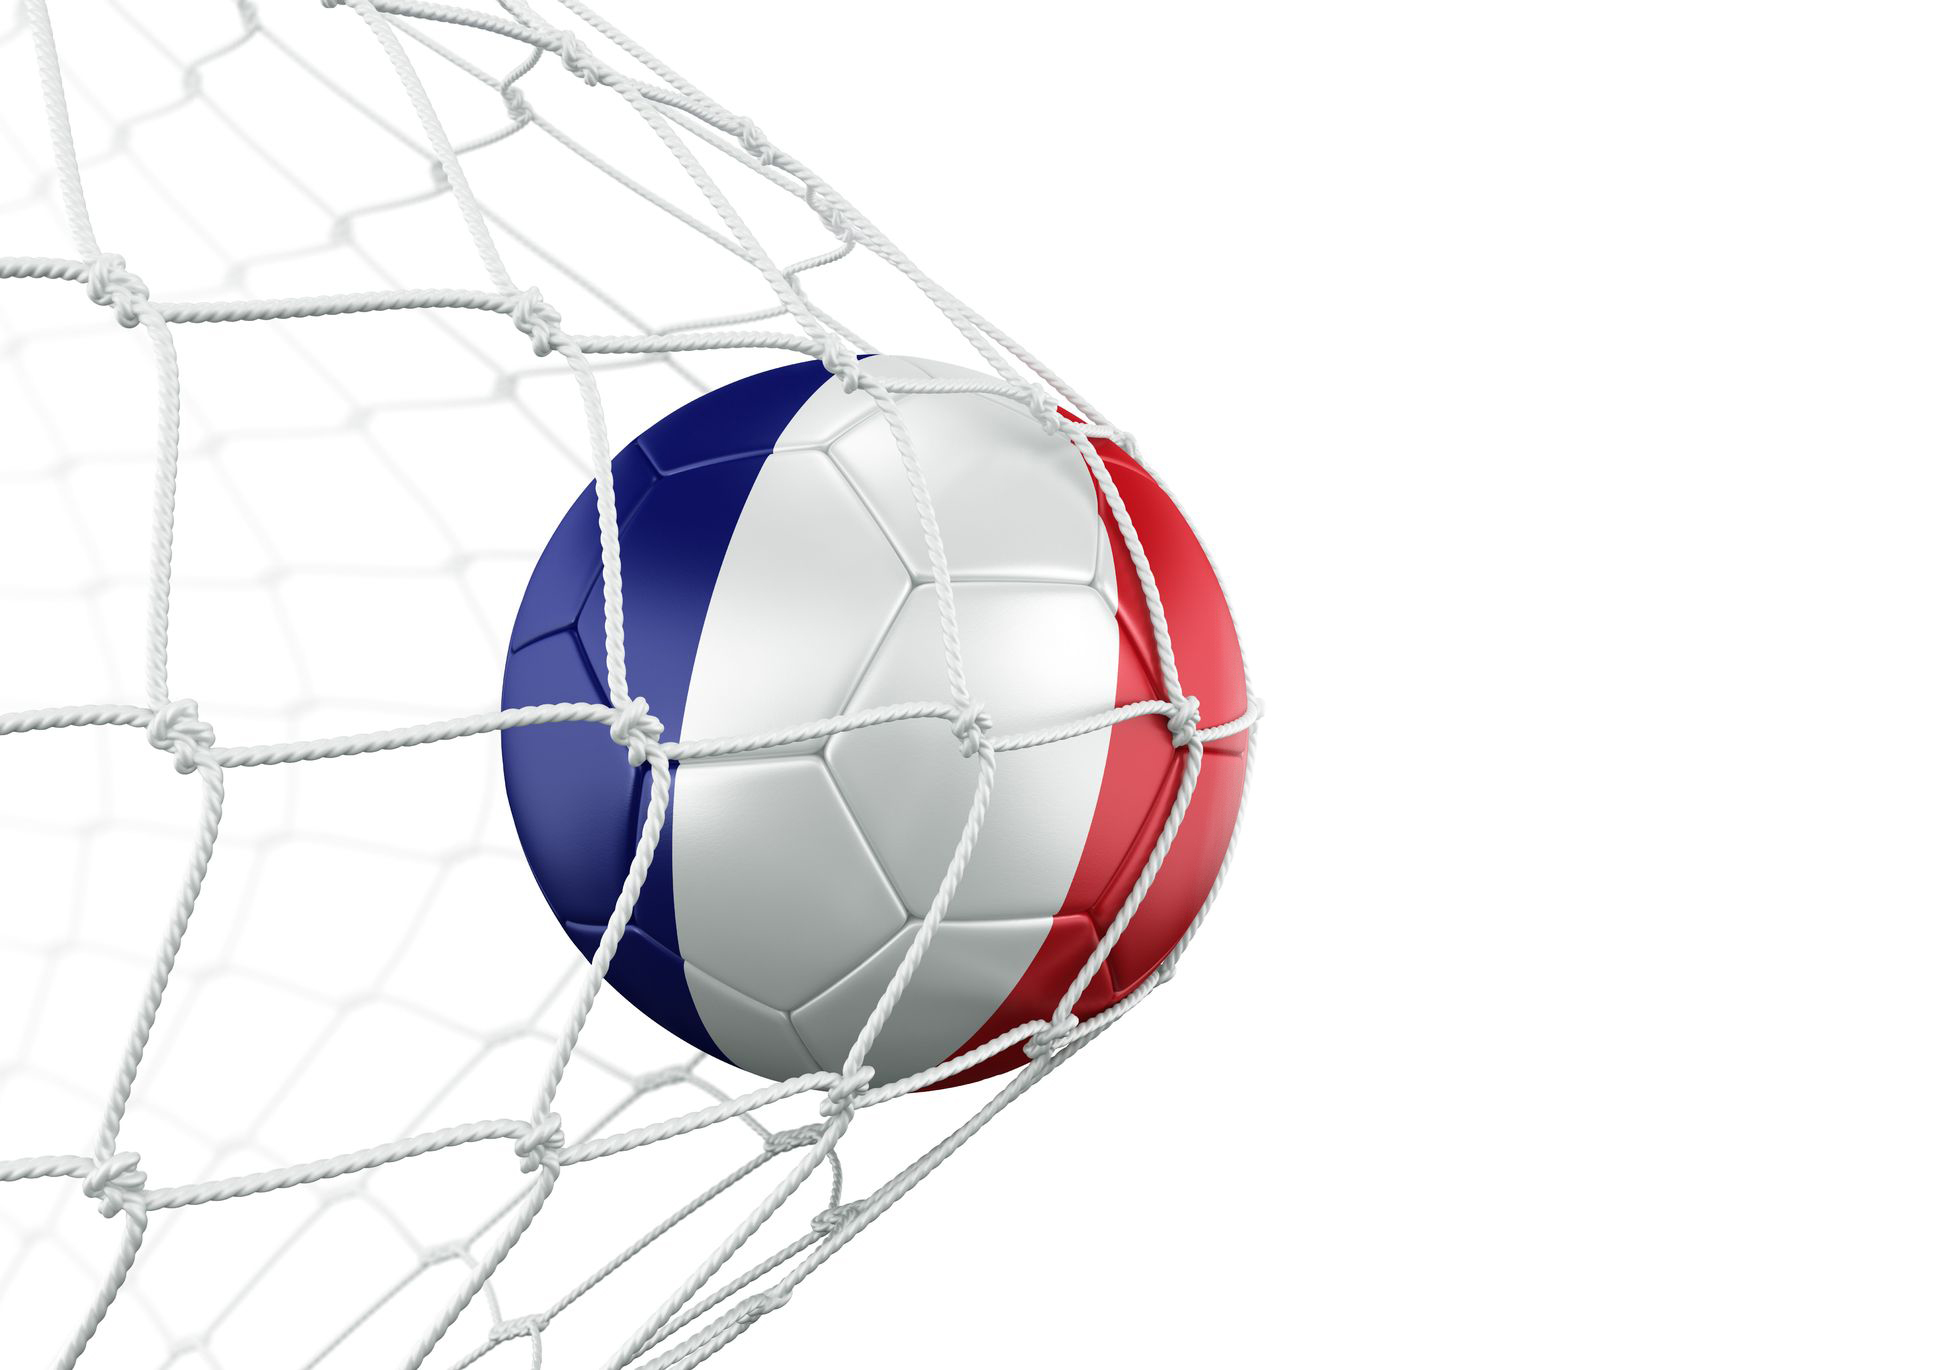 French soccer ball in net